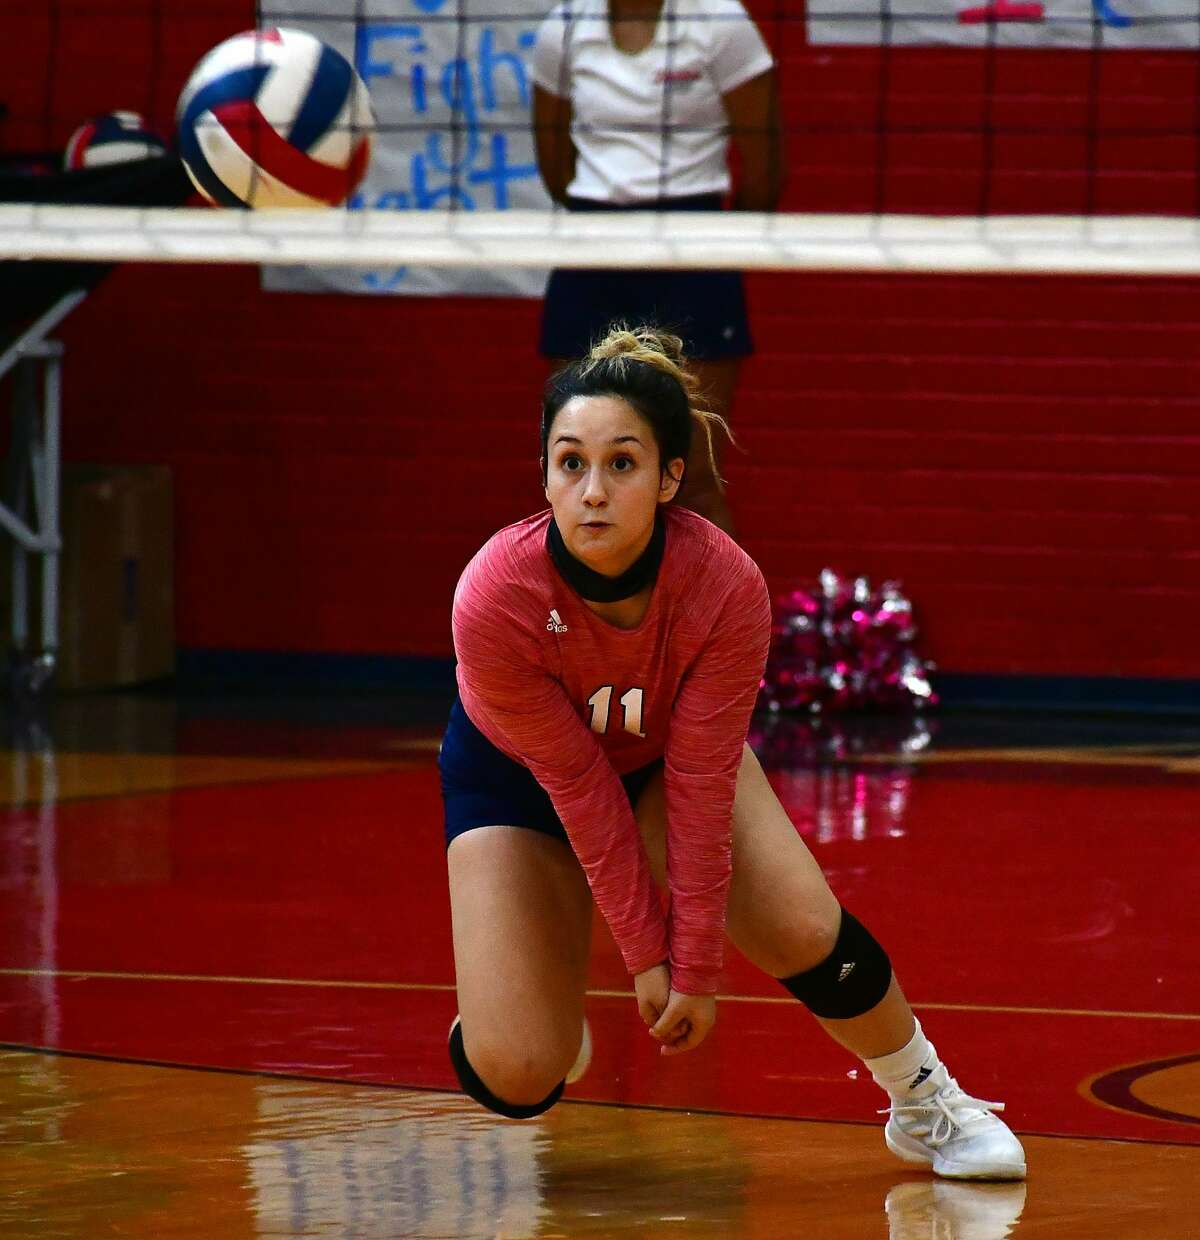 Plainview's Emily Sigala charges forward on a serve receive during a District 3-5A high school volleyball game against Amarillo Caprock on Saturday, Oct. 3, 2020 in the Dog House at Plainview High School.